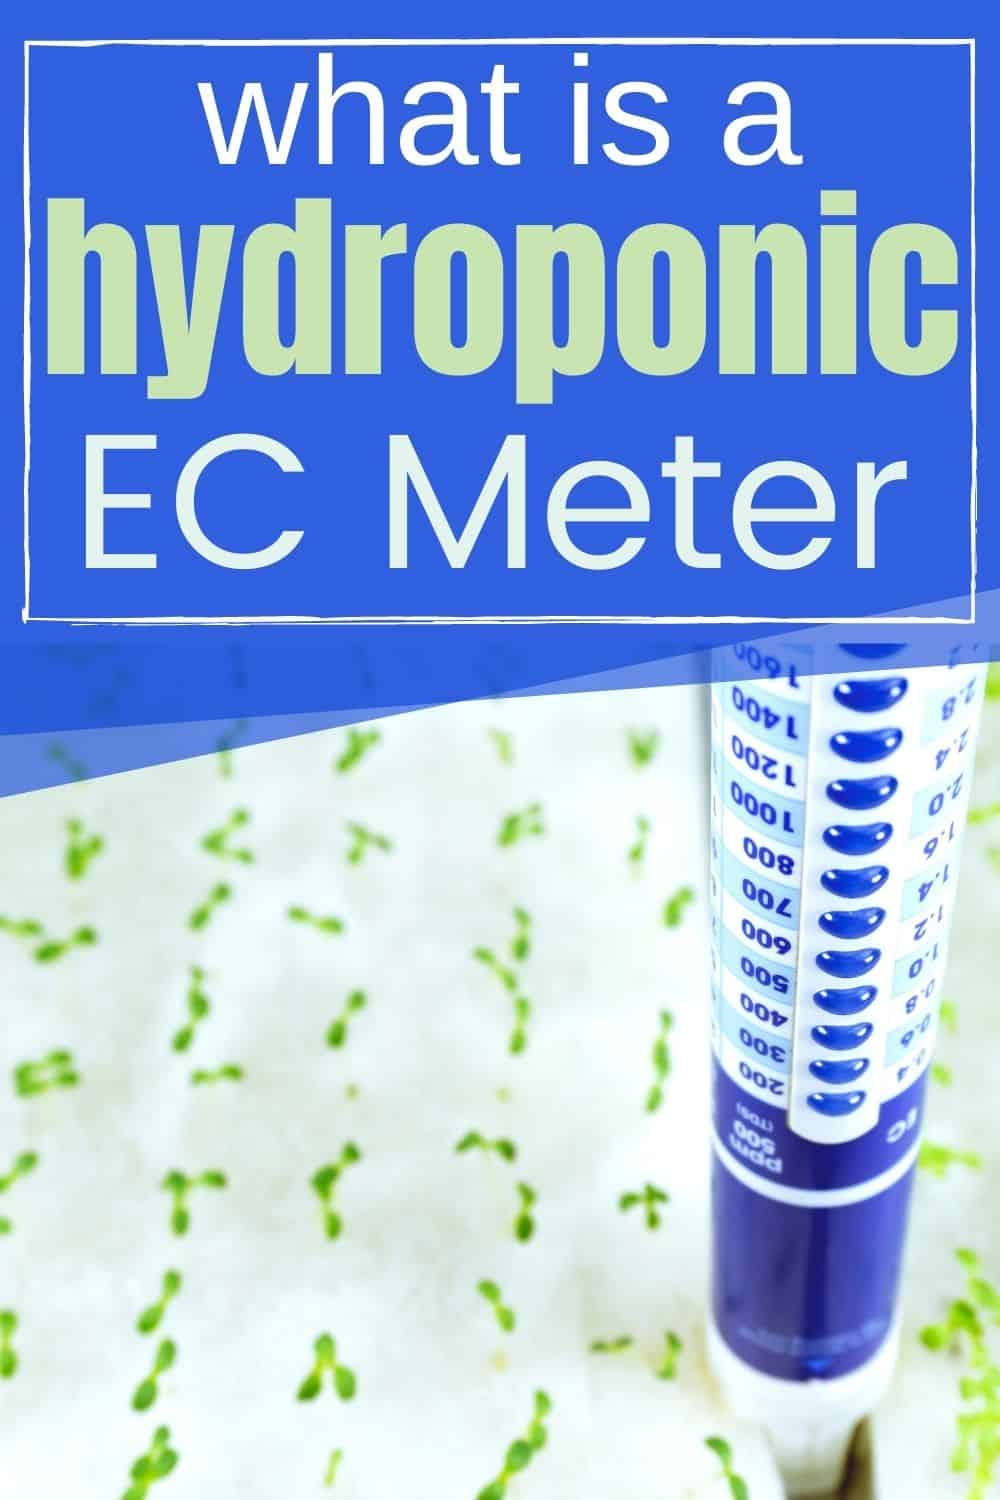 What is a hydroponic EC meter